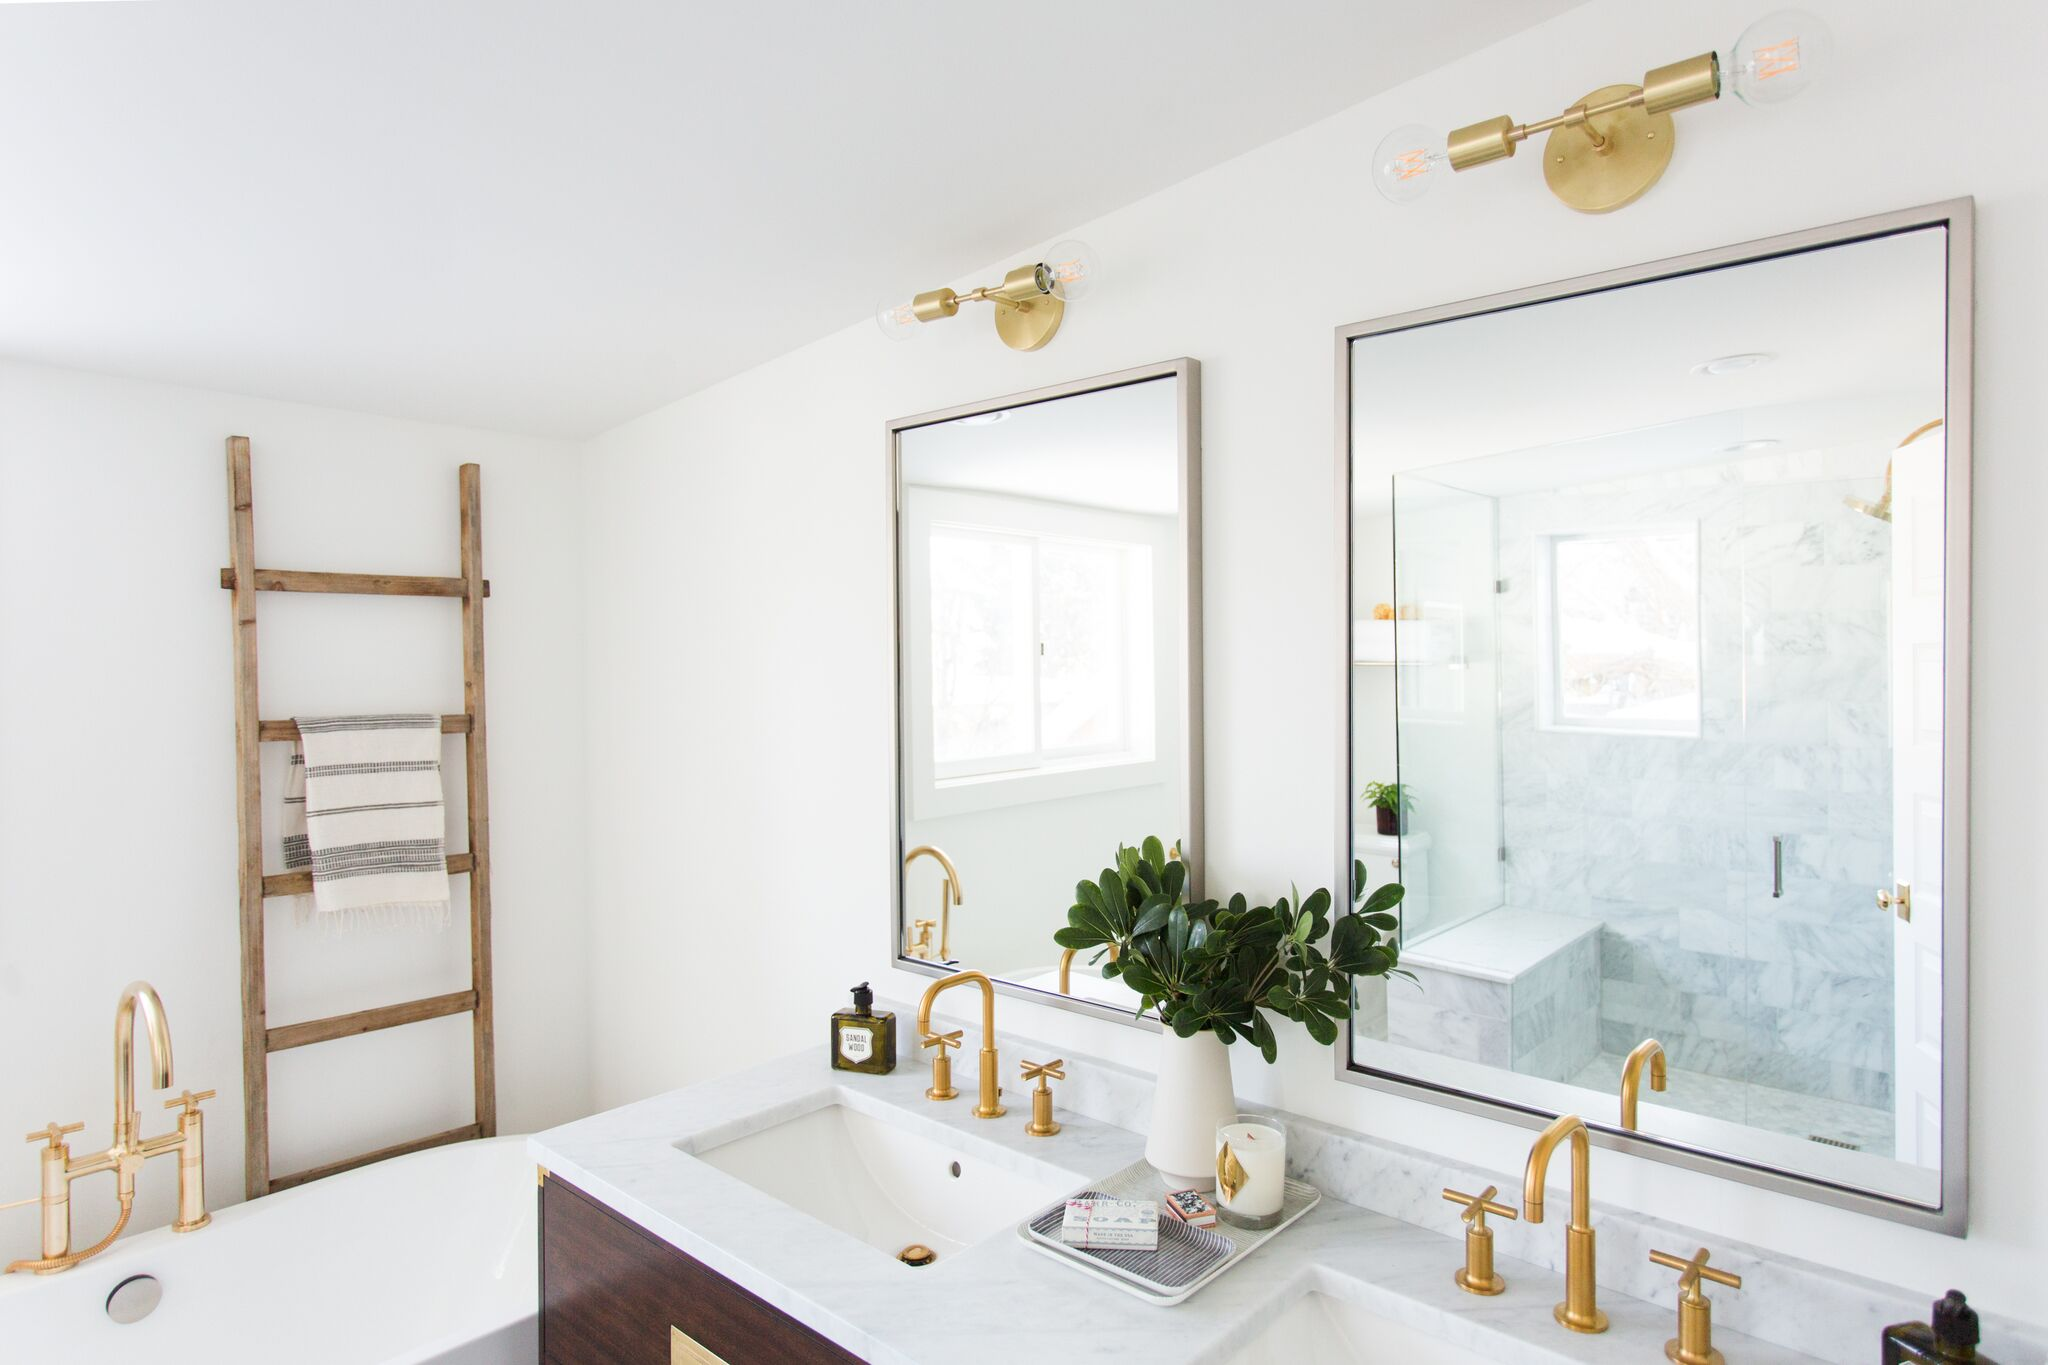 White modern bathroom with gold fixtures